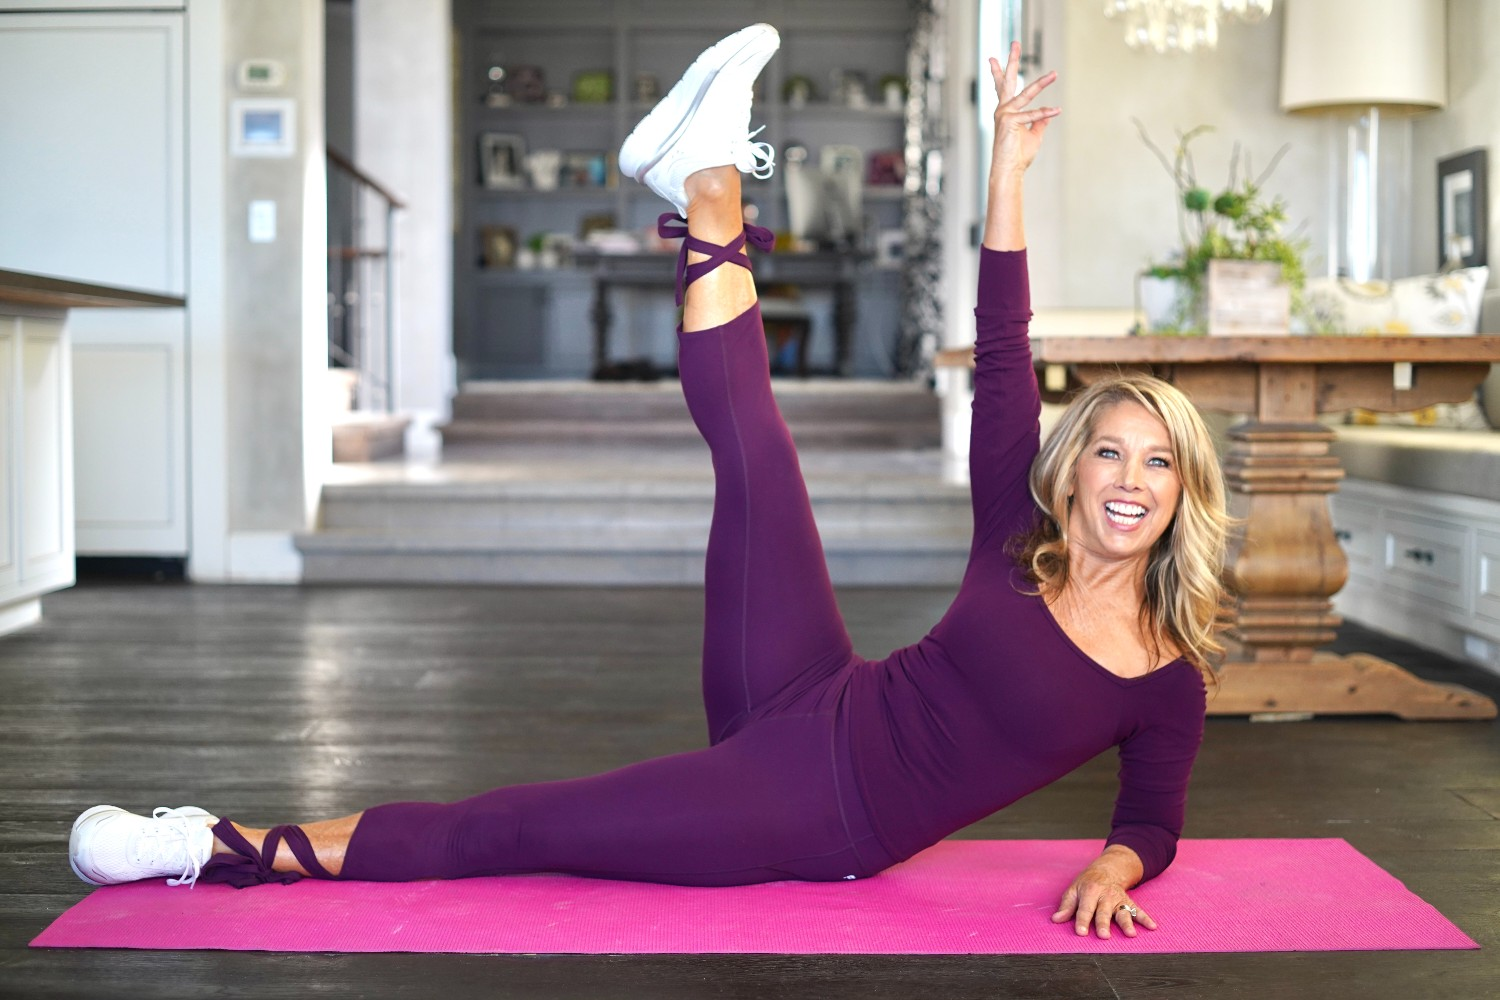 Try My Healthy At Home Workout Plan!